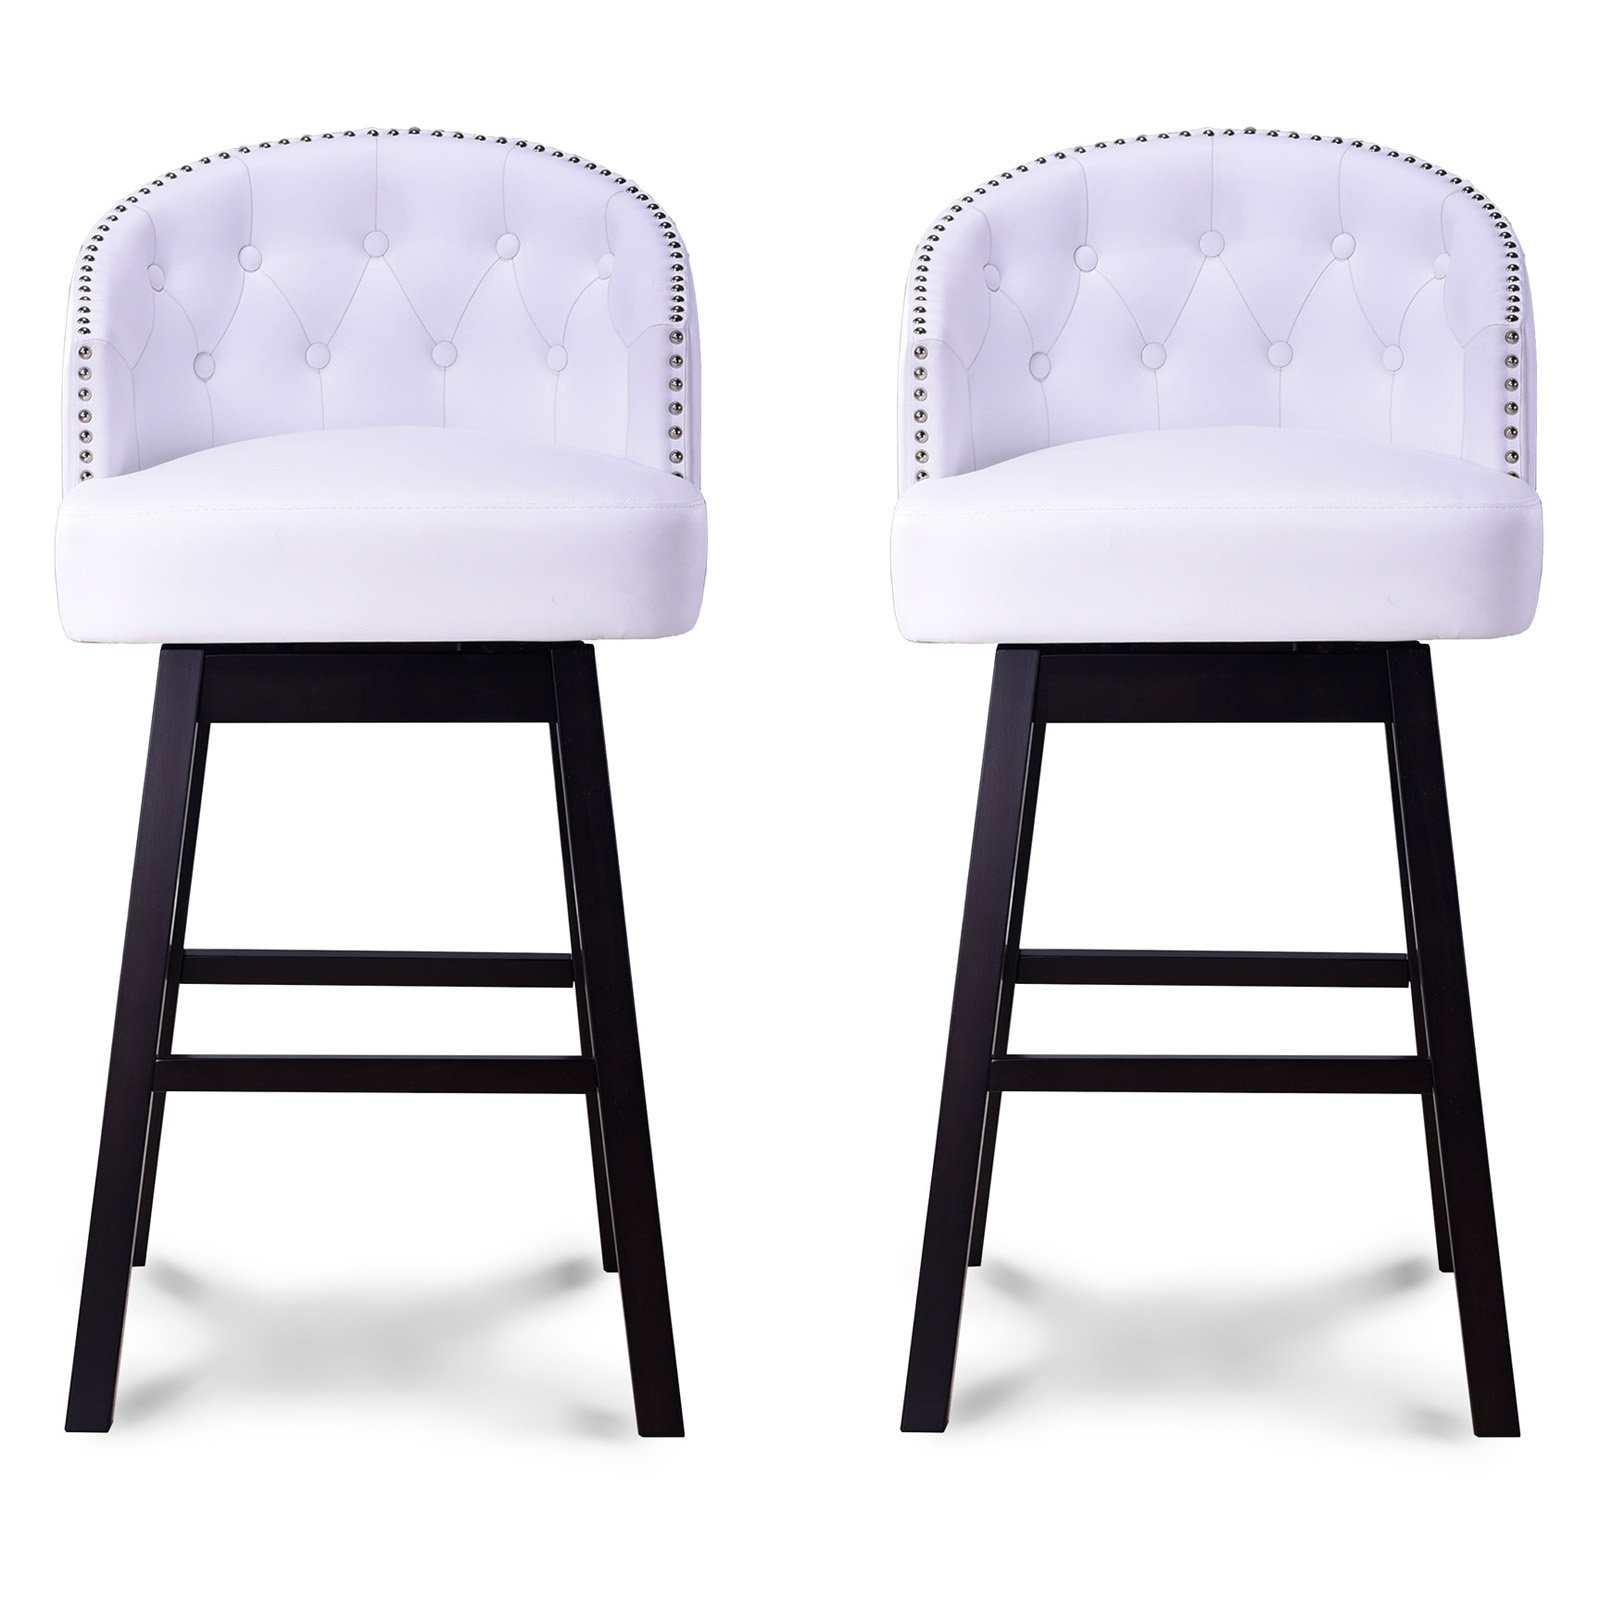 Delicieux Baxton Studio Avril Modern And Contemporary White Faux Leather Tufted  Swivel Barstools With Nailhead Trim, Set Of 2